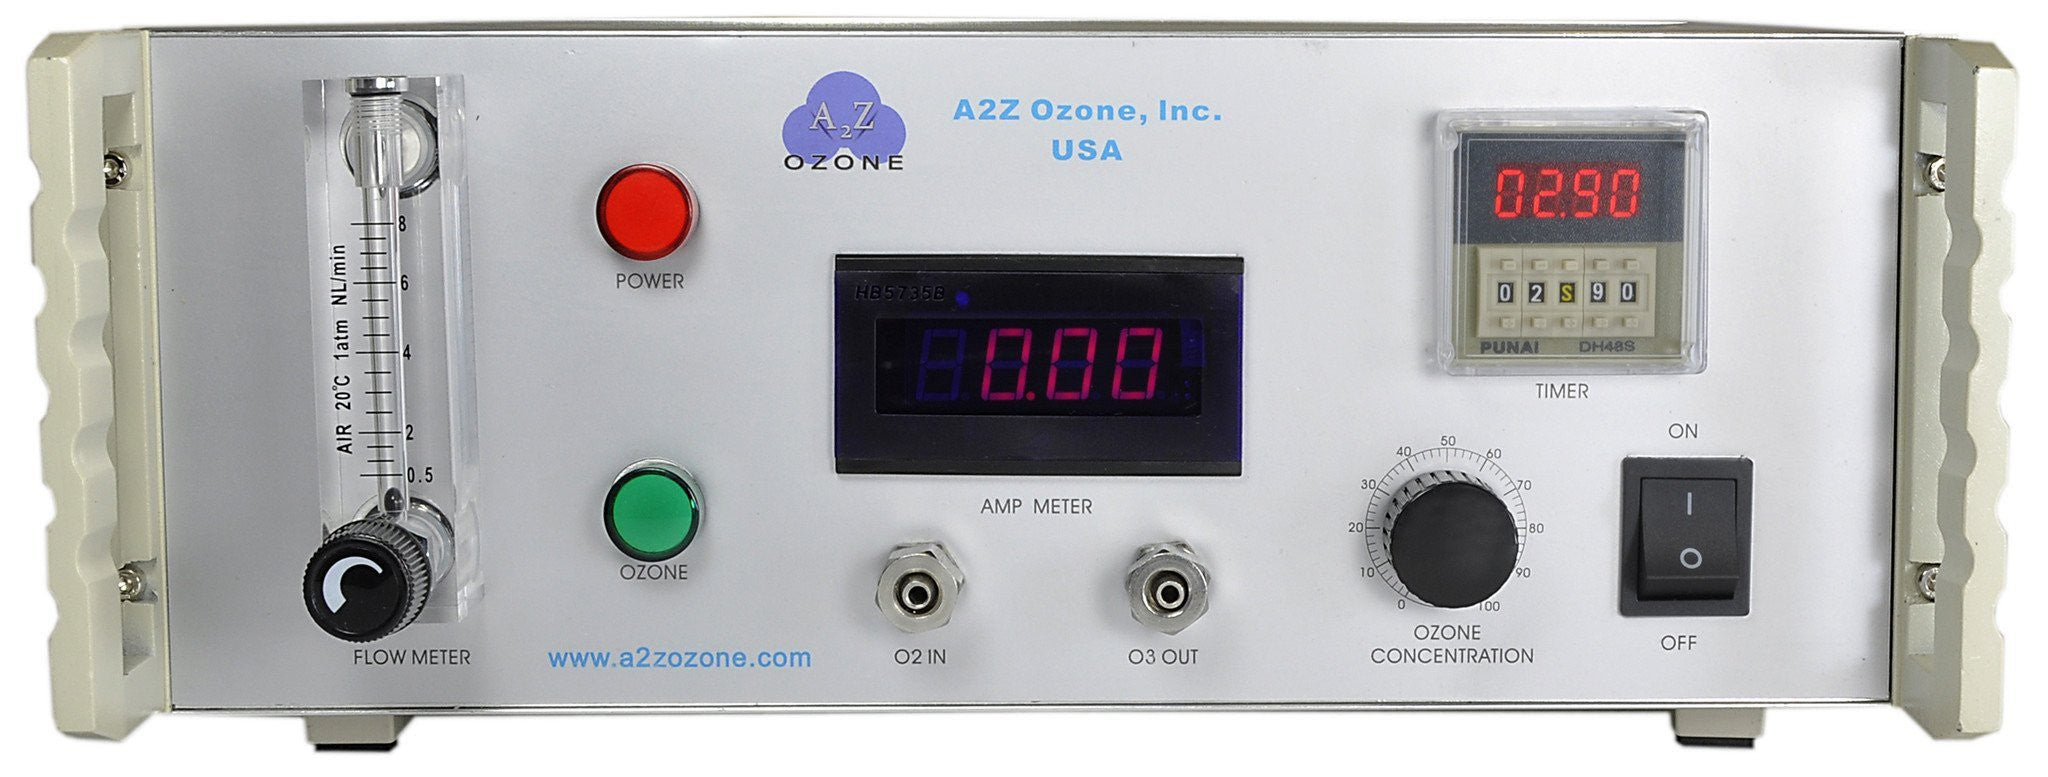 5G Lab Benchtop A2Z Ozone generator ozonolysis wastewater treatment research university hospital chemical